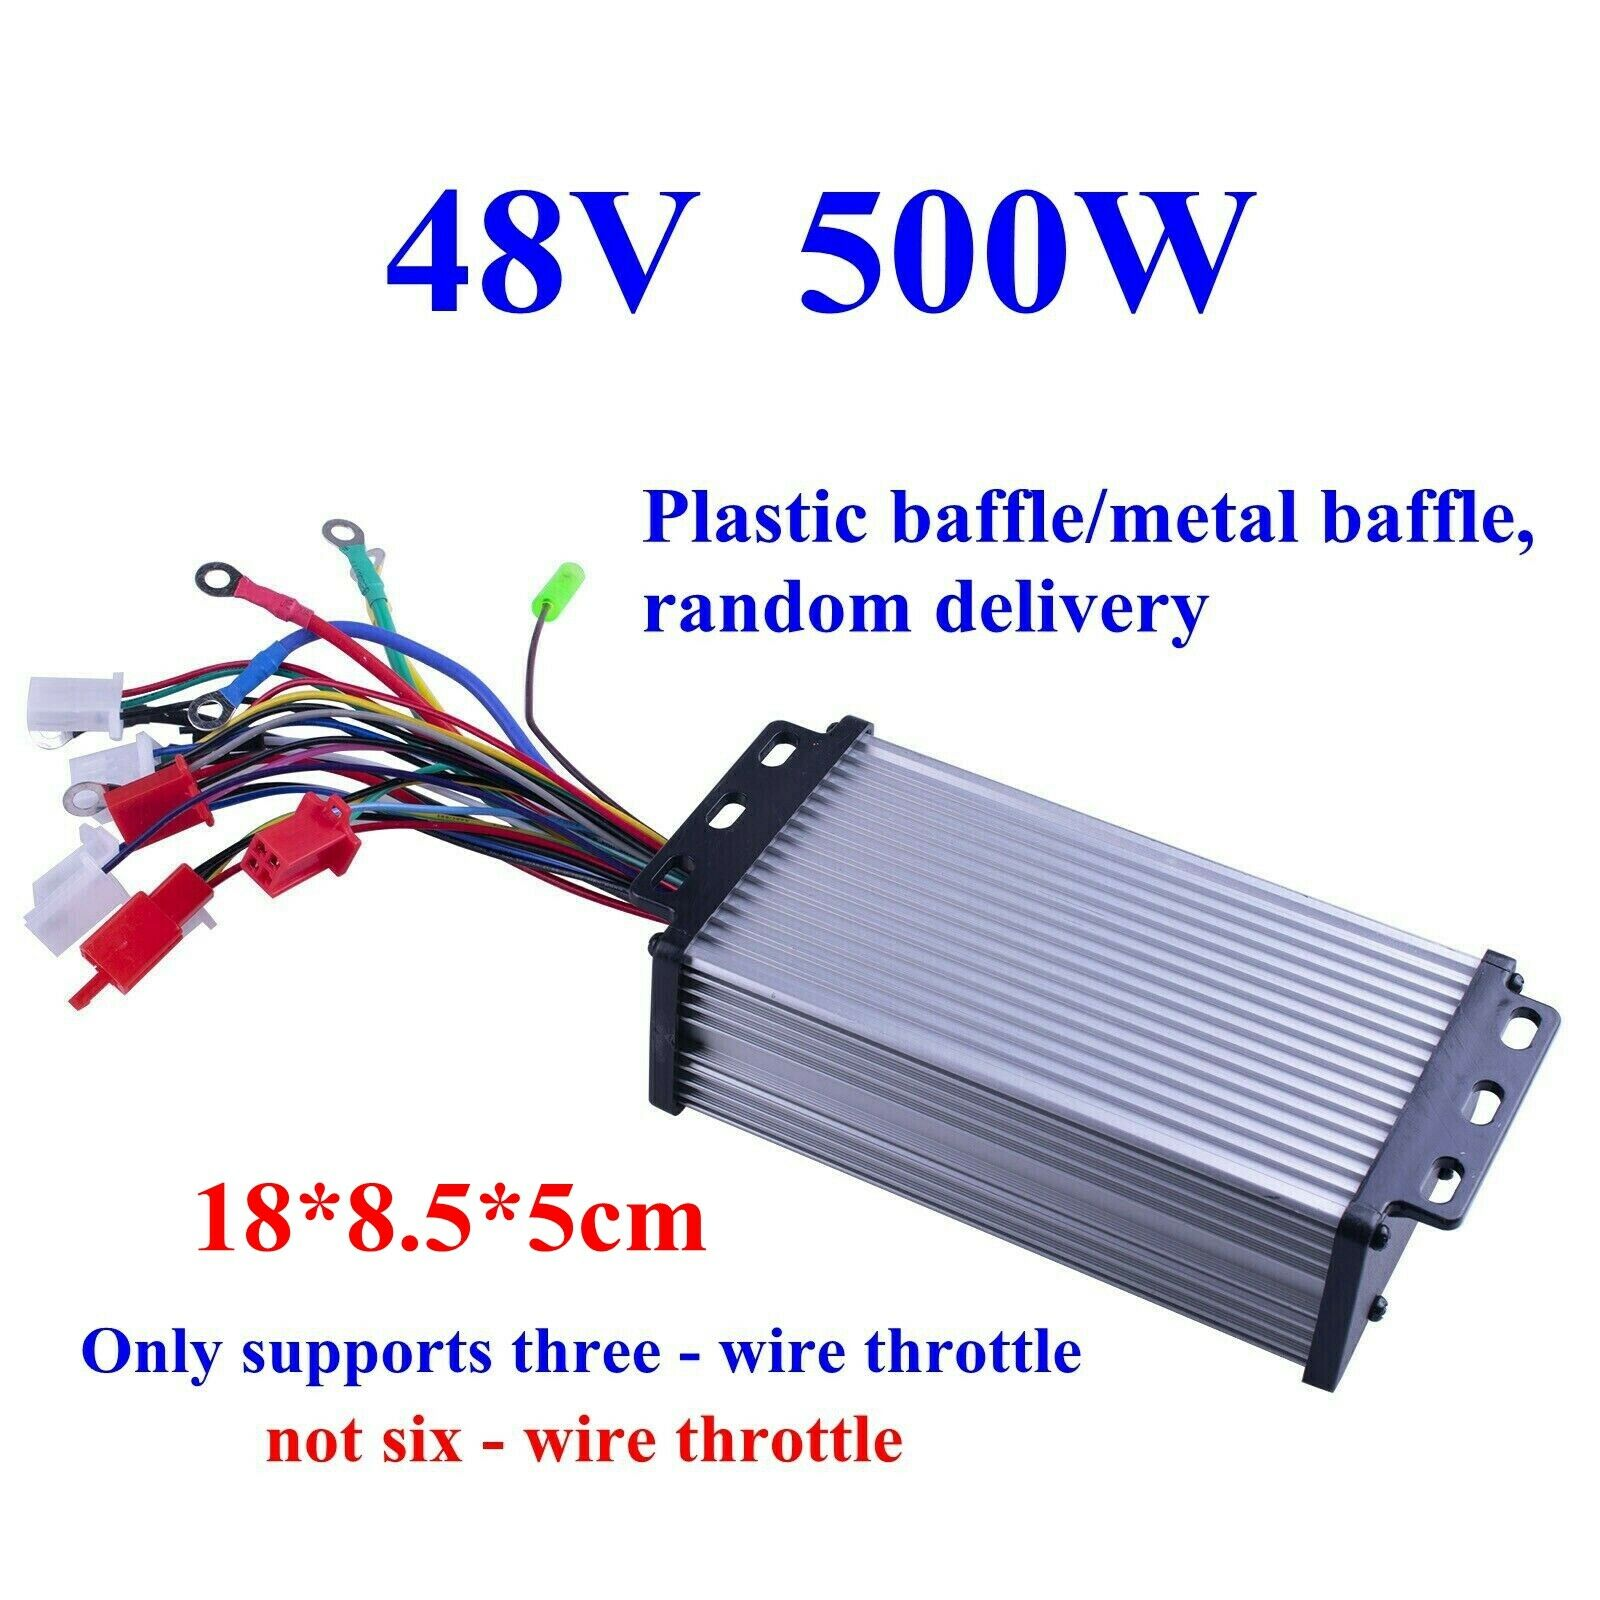 Yanmis 500W Motor Brushless Controller Multifunction Motor Controller for Electric Skateboard Ebike Scooter Electric Bicycle Scooter 500W48V